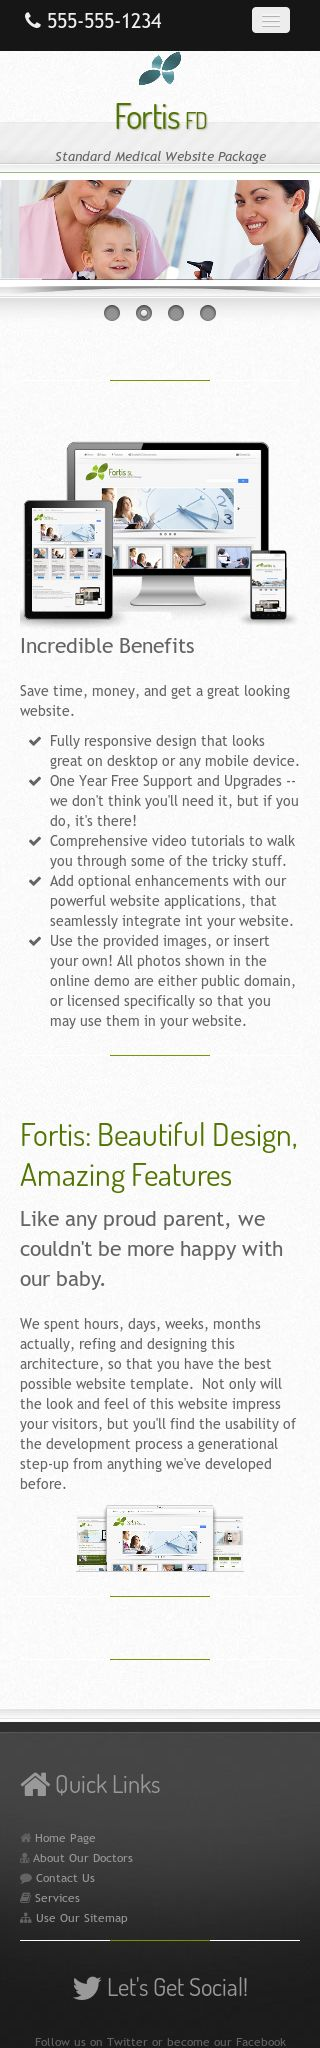 Mobile: Medical Frontpage Template